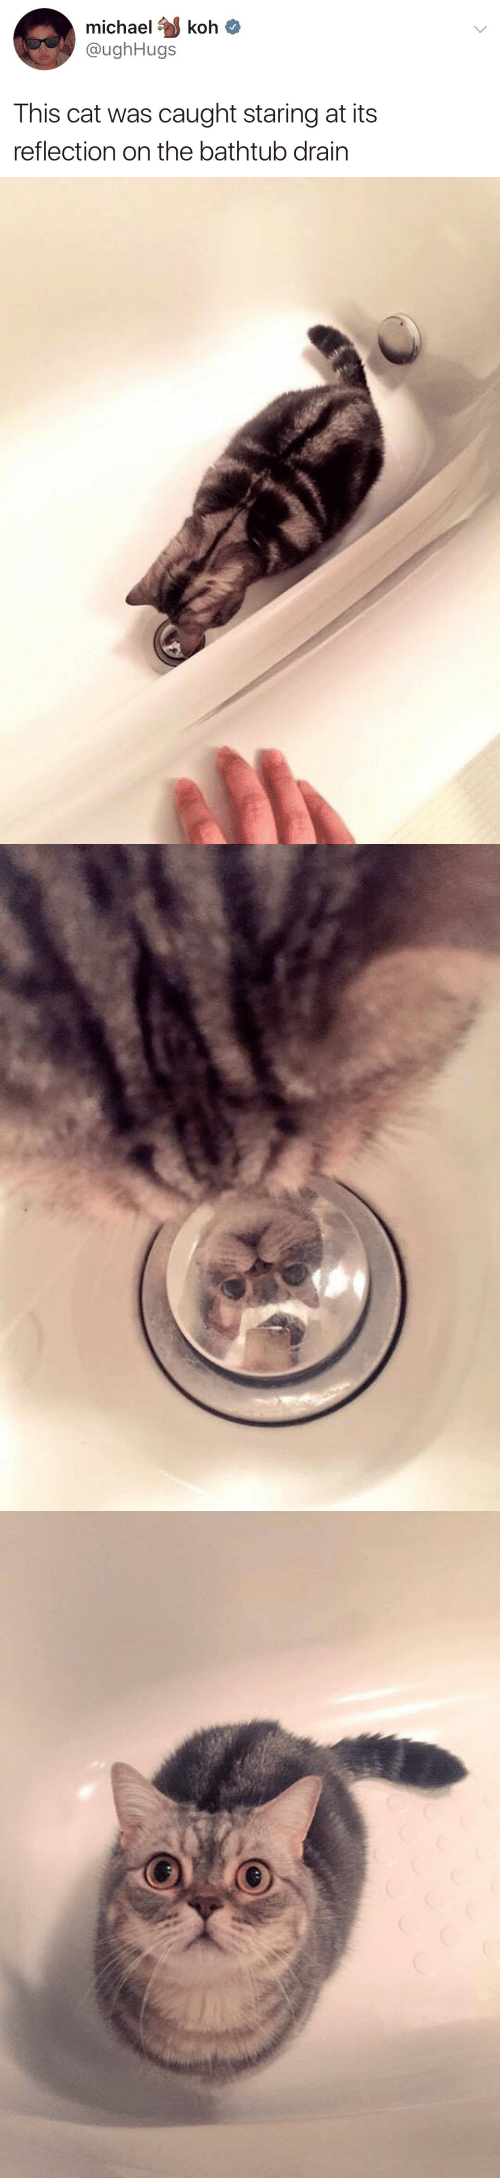 Michael, Cat, and Reflection: michael koh  @ughHugs  This cat was caught staring at its  reflection on the bathtub drain